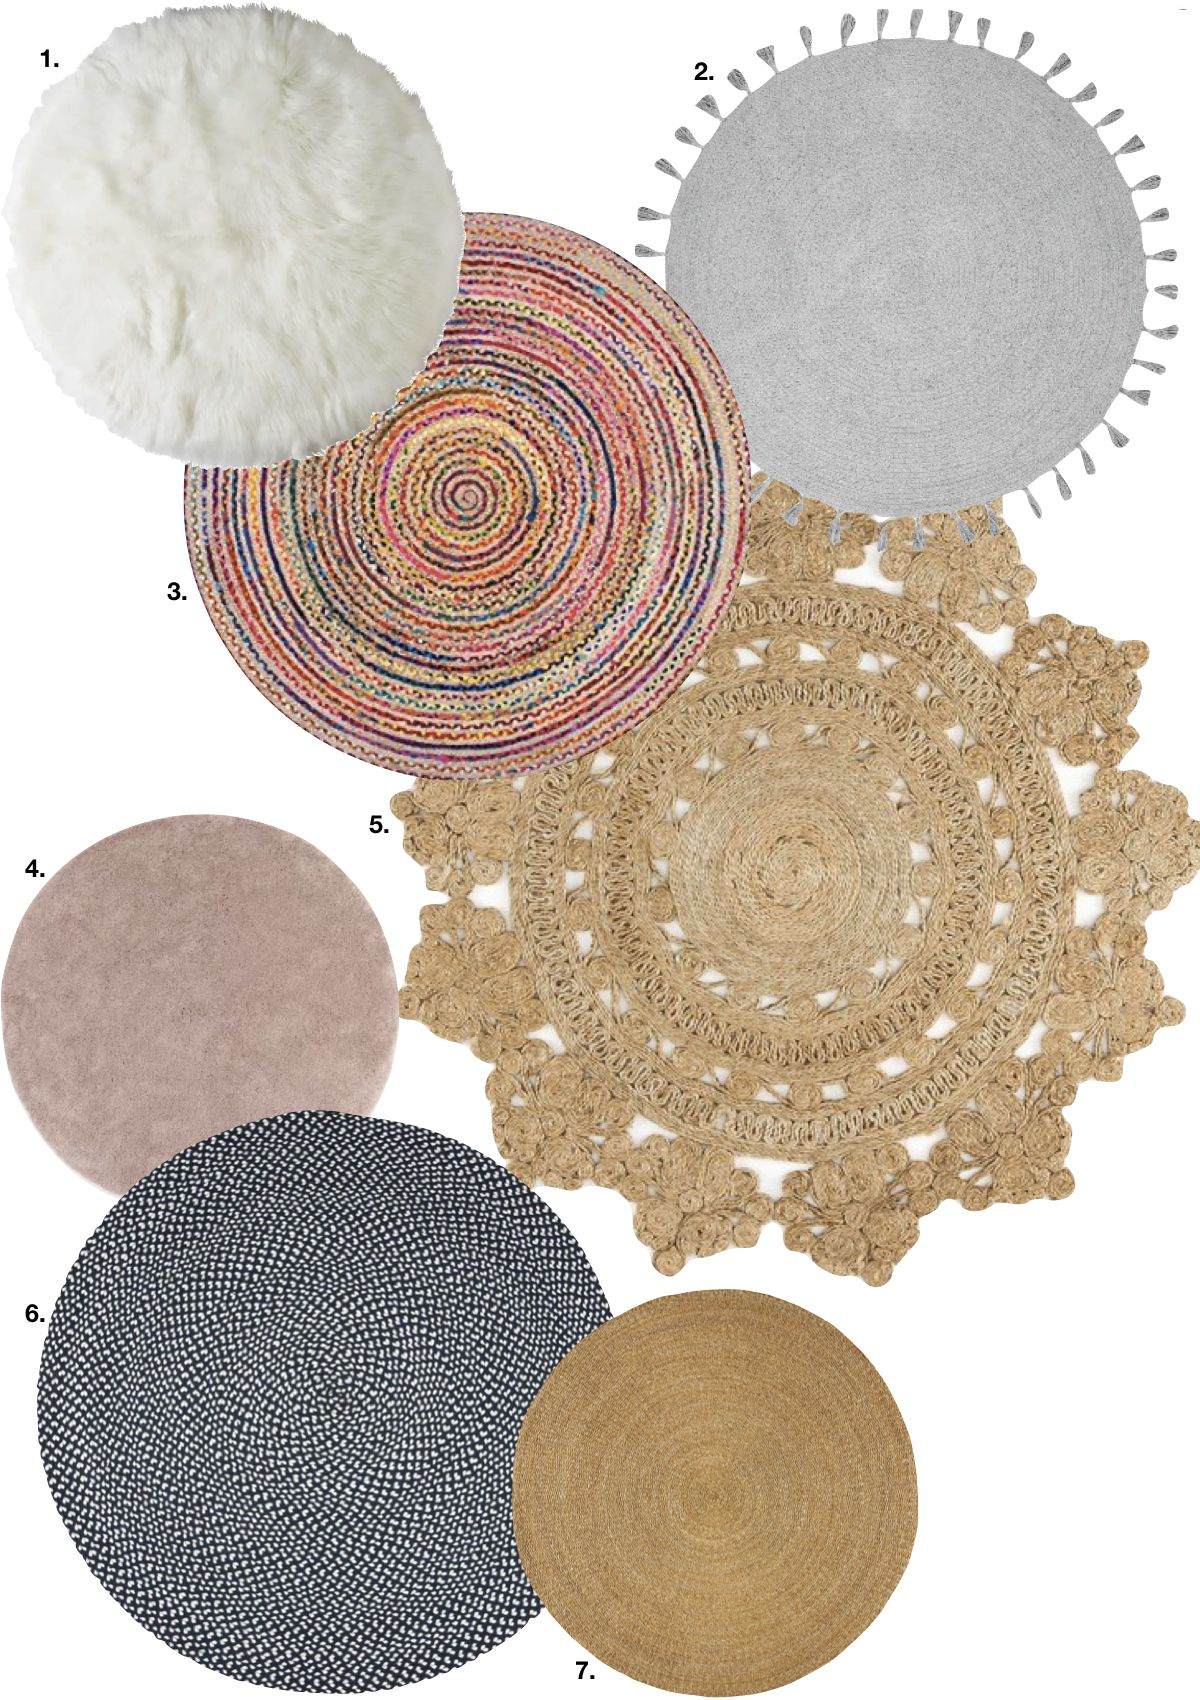 Tapis Rond Liste Chambre Adulte   Blog Déco   Clem Around The Corner  Shopping List Pour